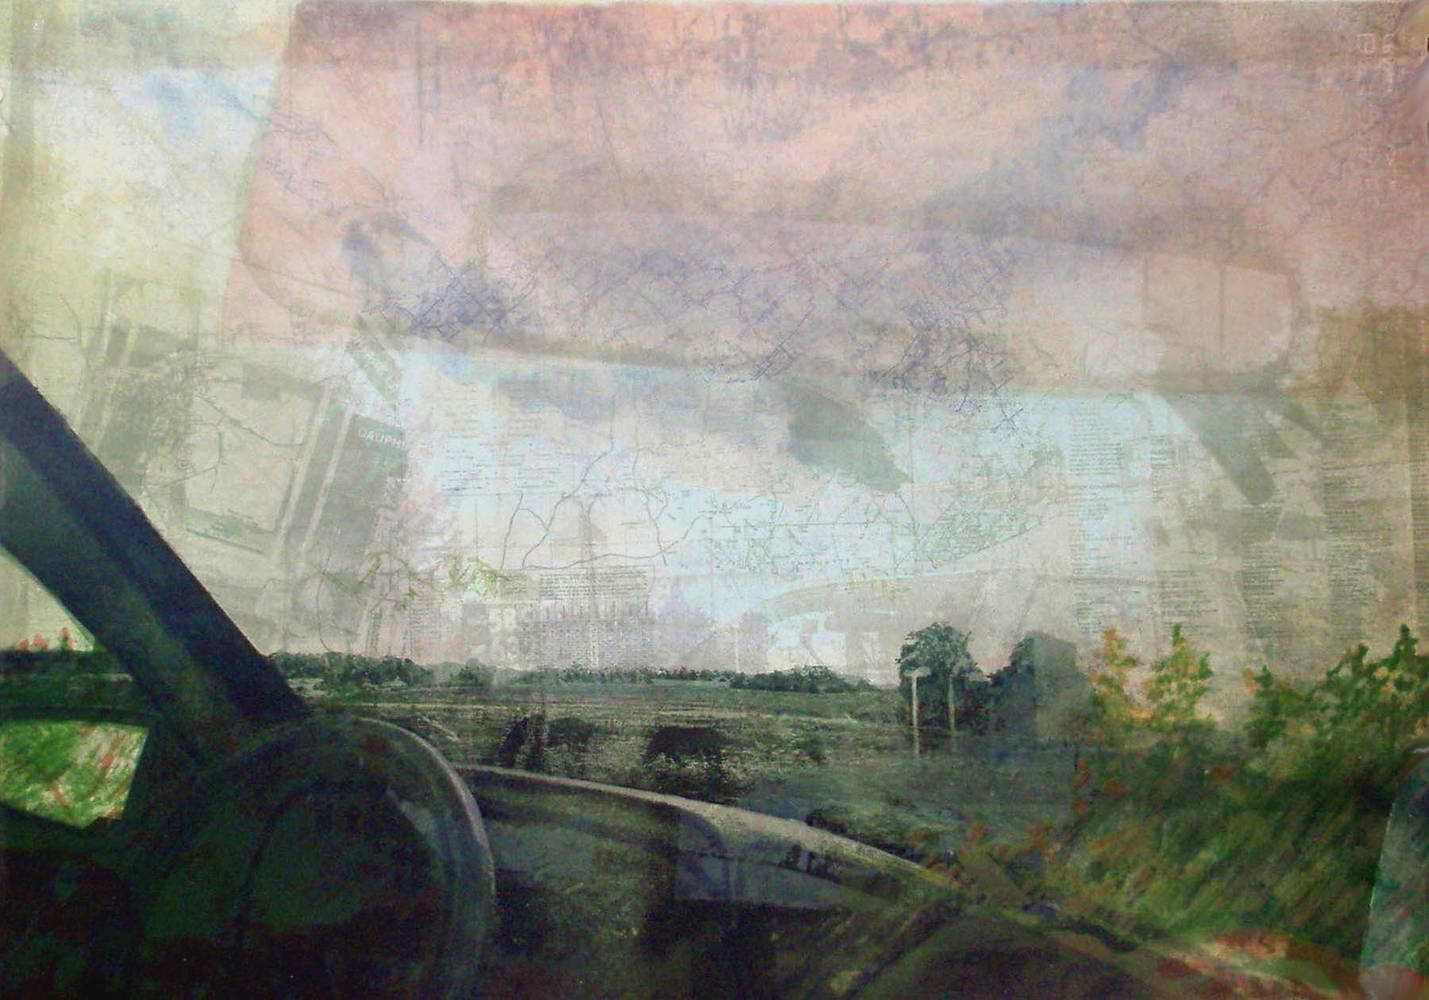 Dashboard & Horses, Relief & Monotype, 75x52.5 cm by Julie Mcintyre